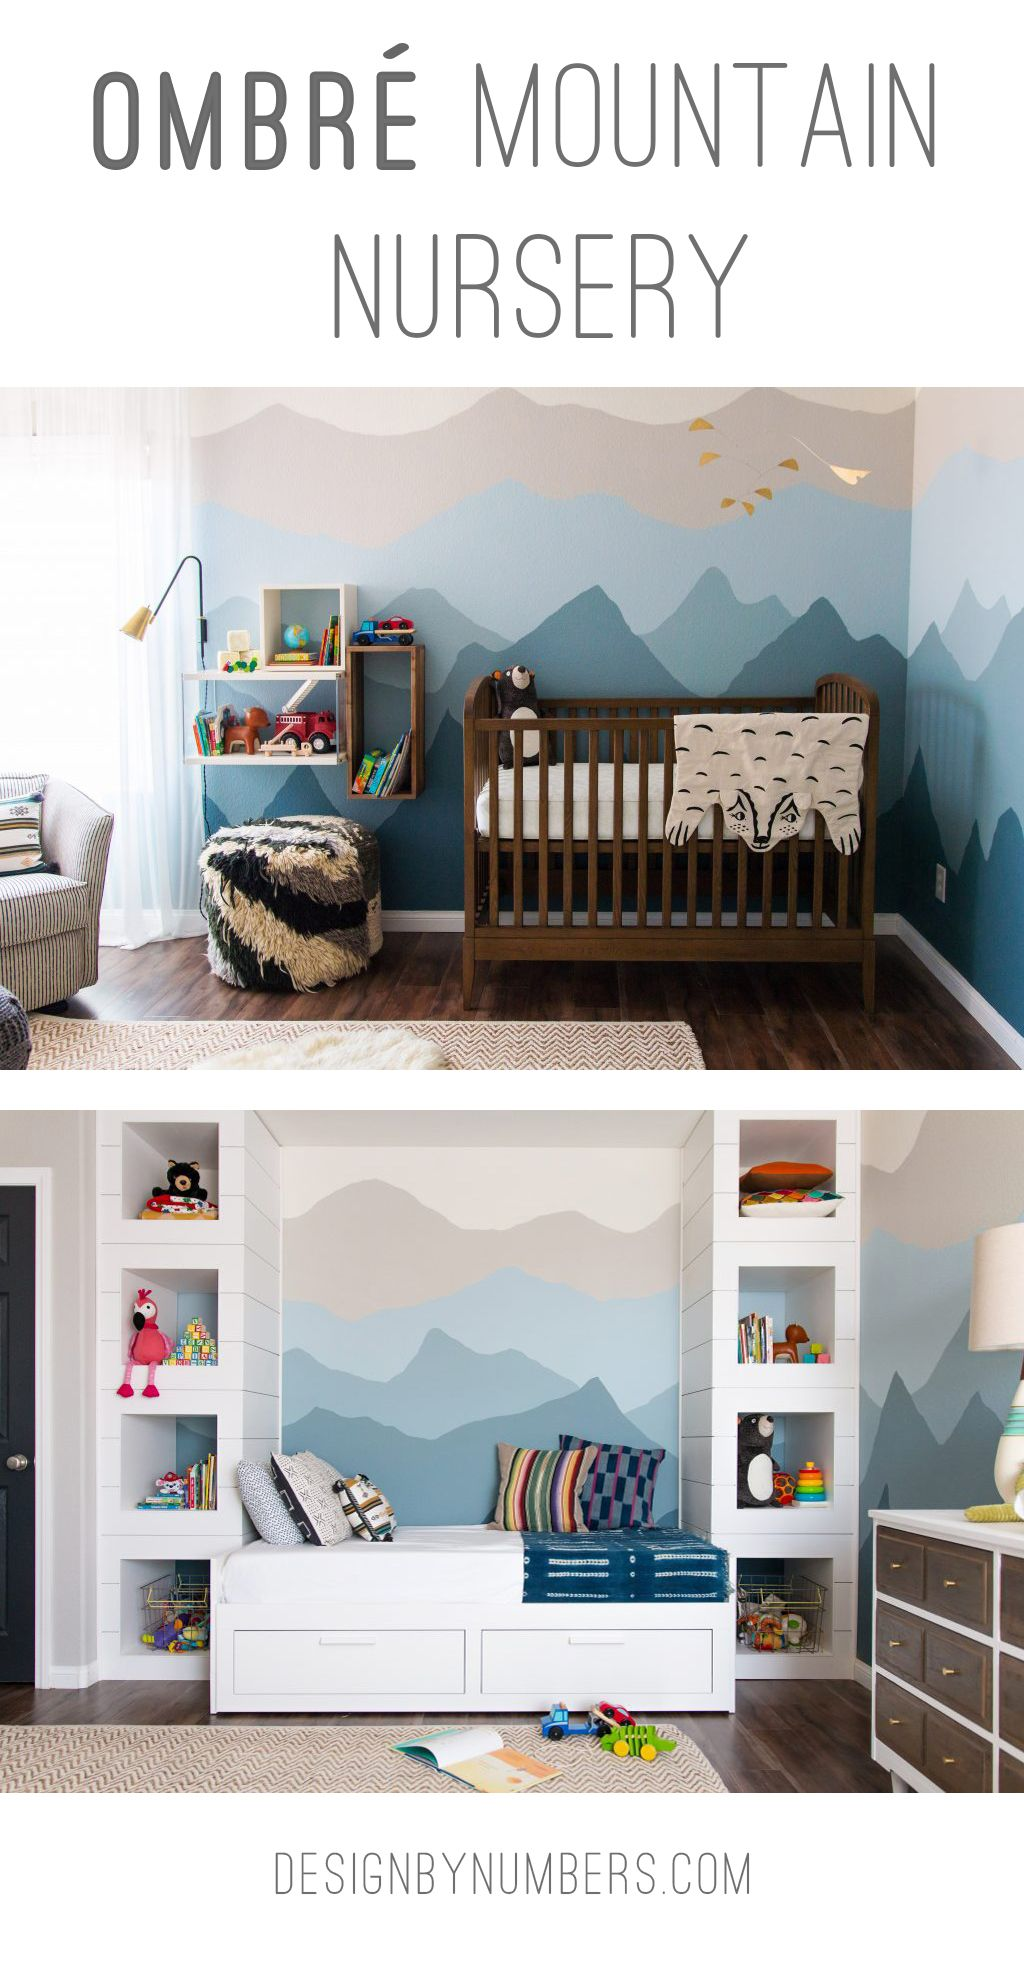 Pin By Design By Numbers On Little Ones Boy Toddler Bedroom Mountain Nursery Kids